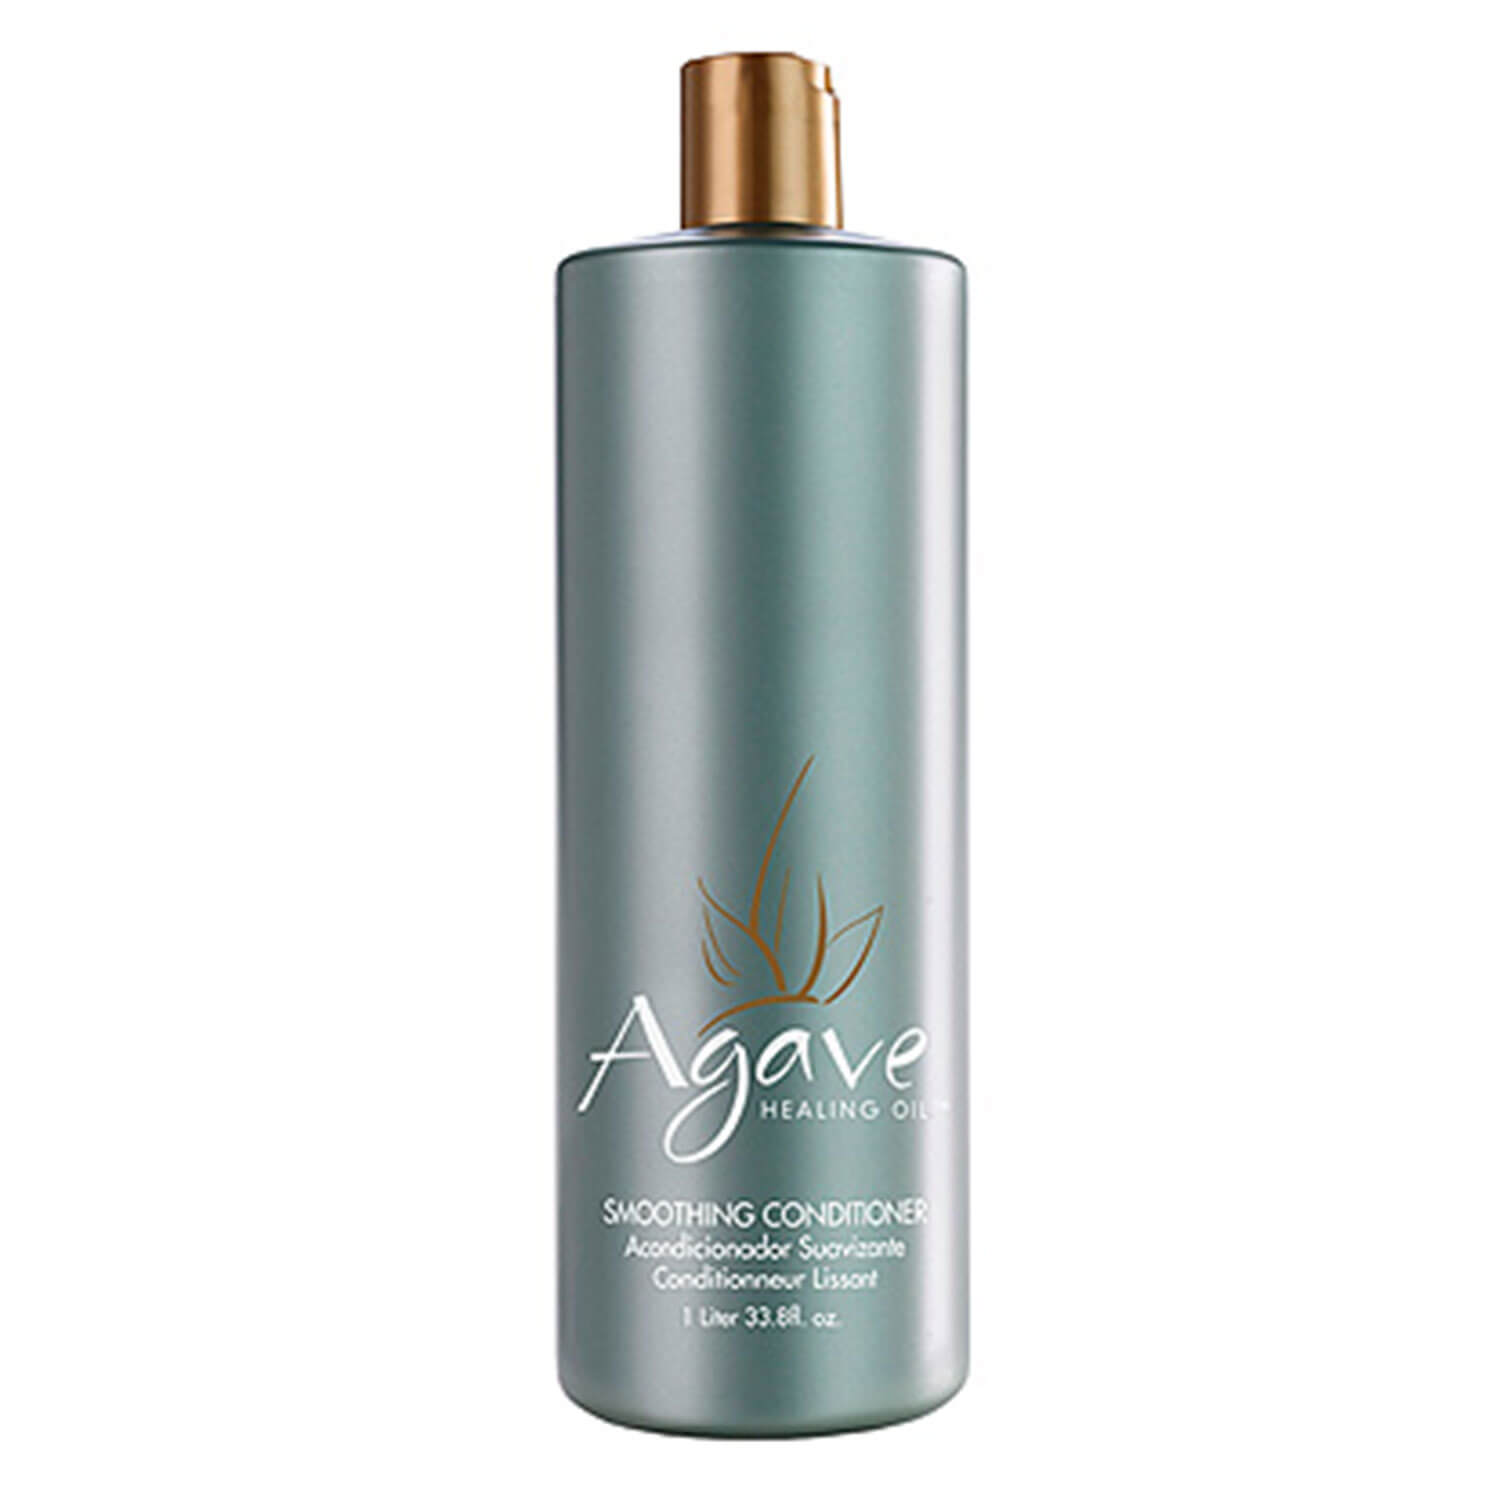 Agave - Smoothing Conditioner